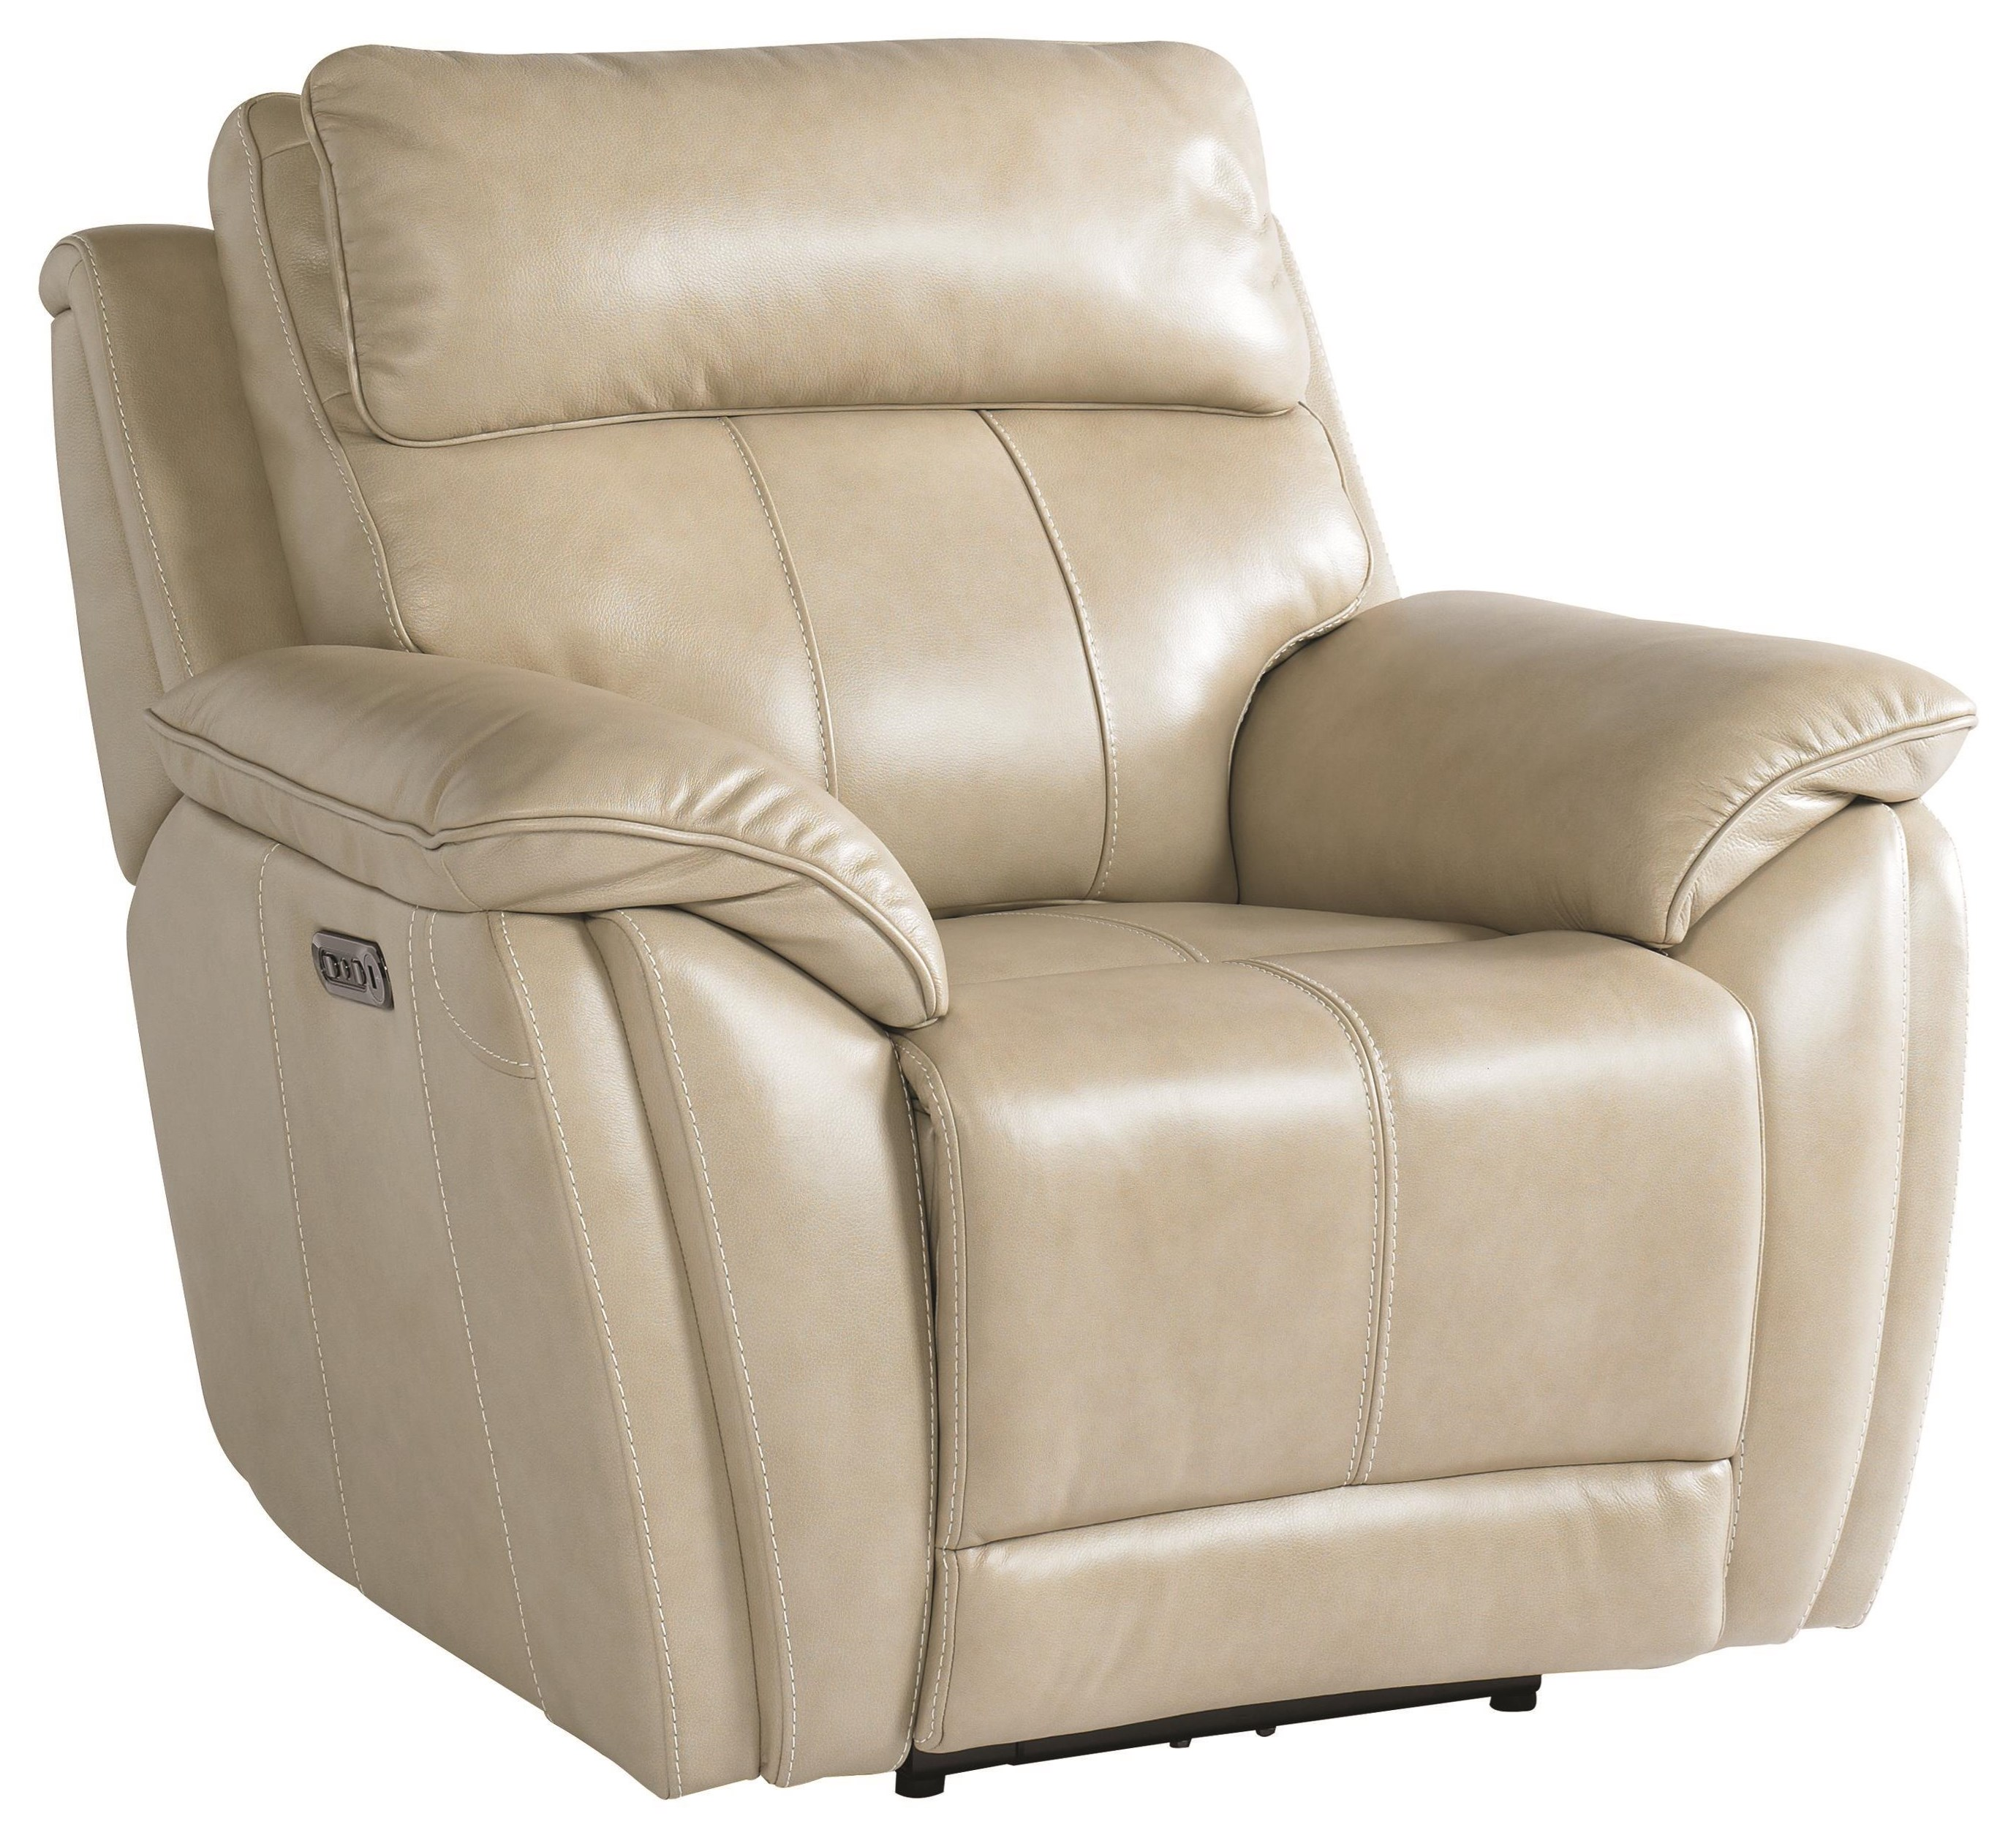 Levitate Recliner With Power Headrest by Bassett at Johnny Janosik